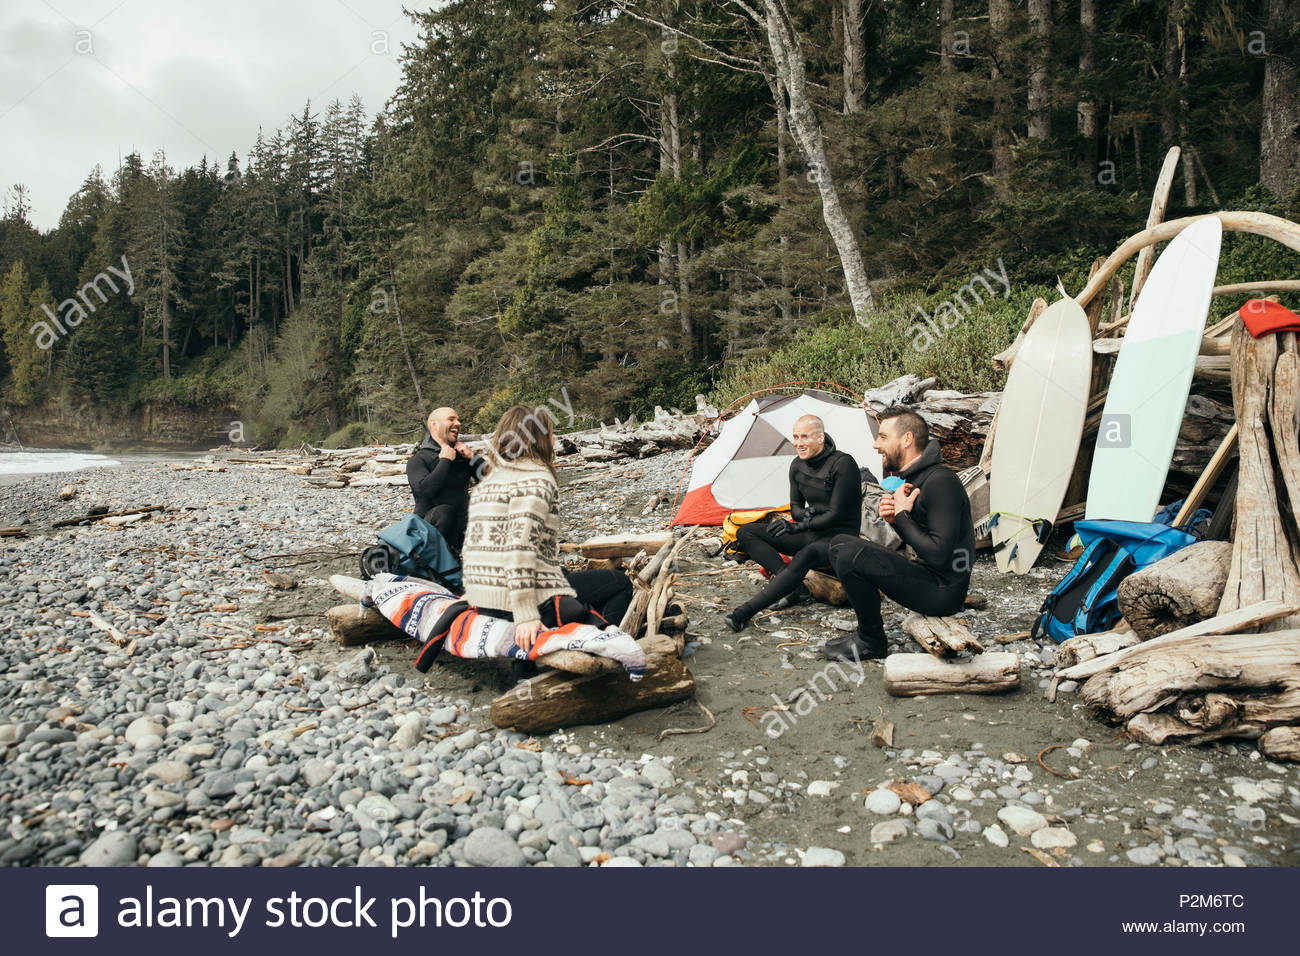 Friends enjoying weekend surfing getaway, relaxing at campsite on rugged beach - Stock Image